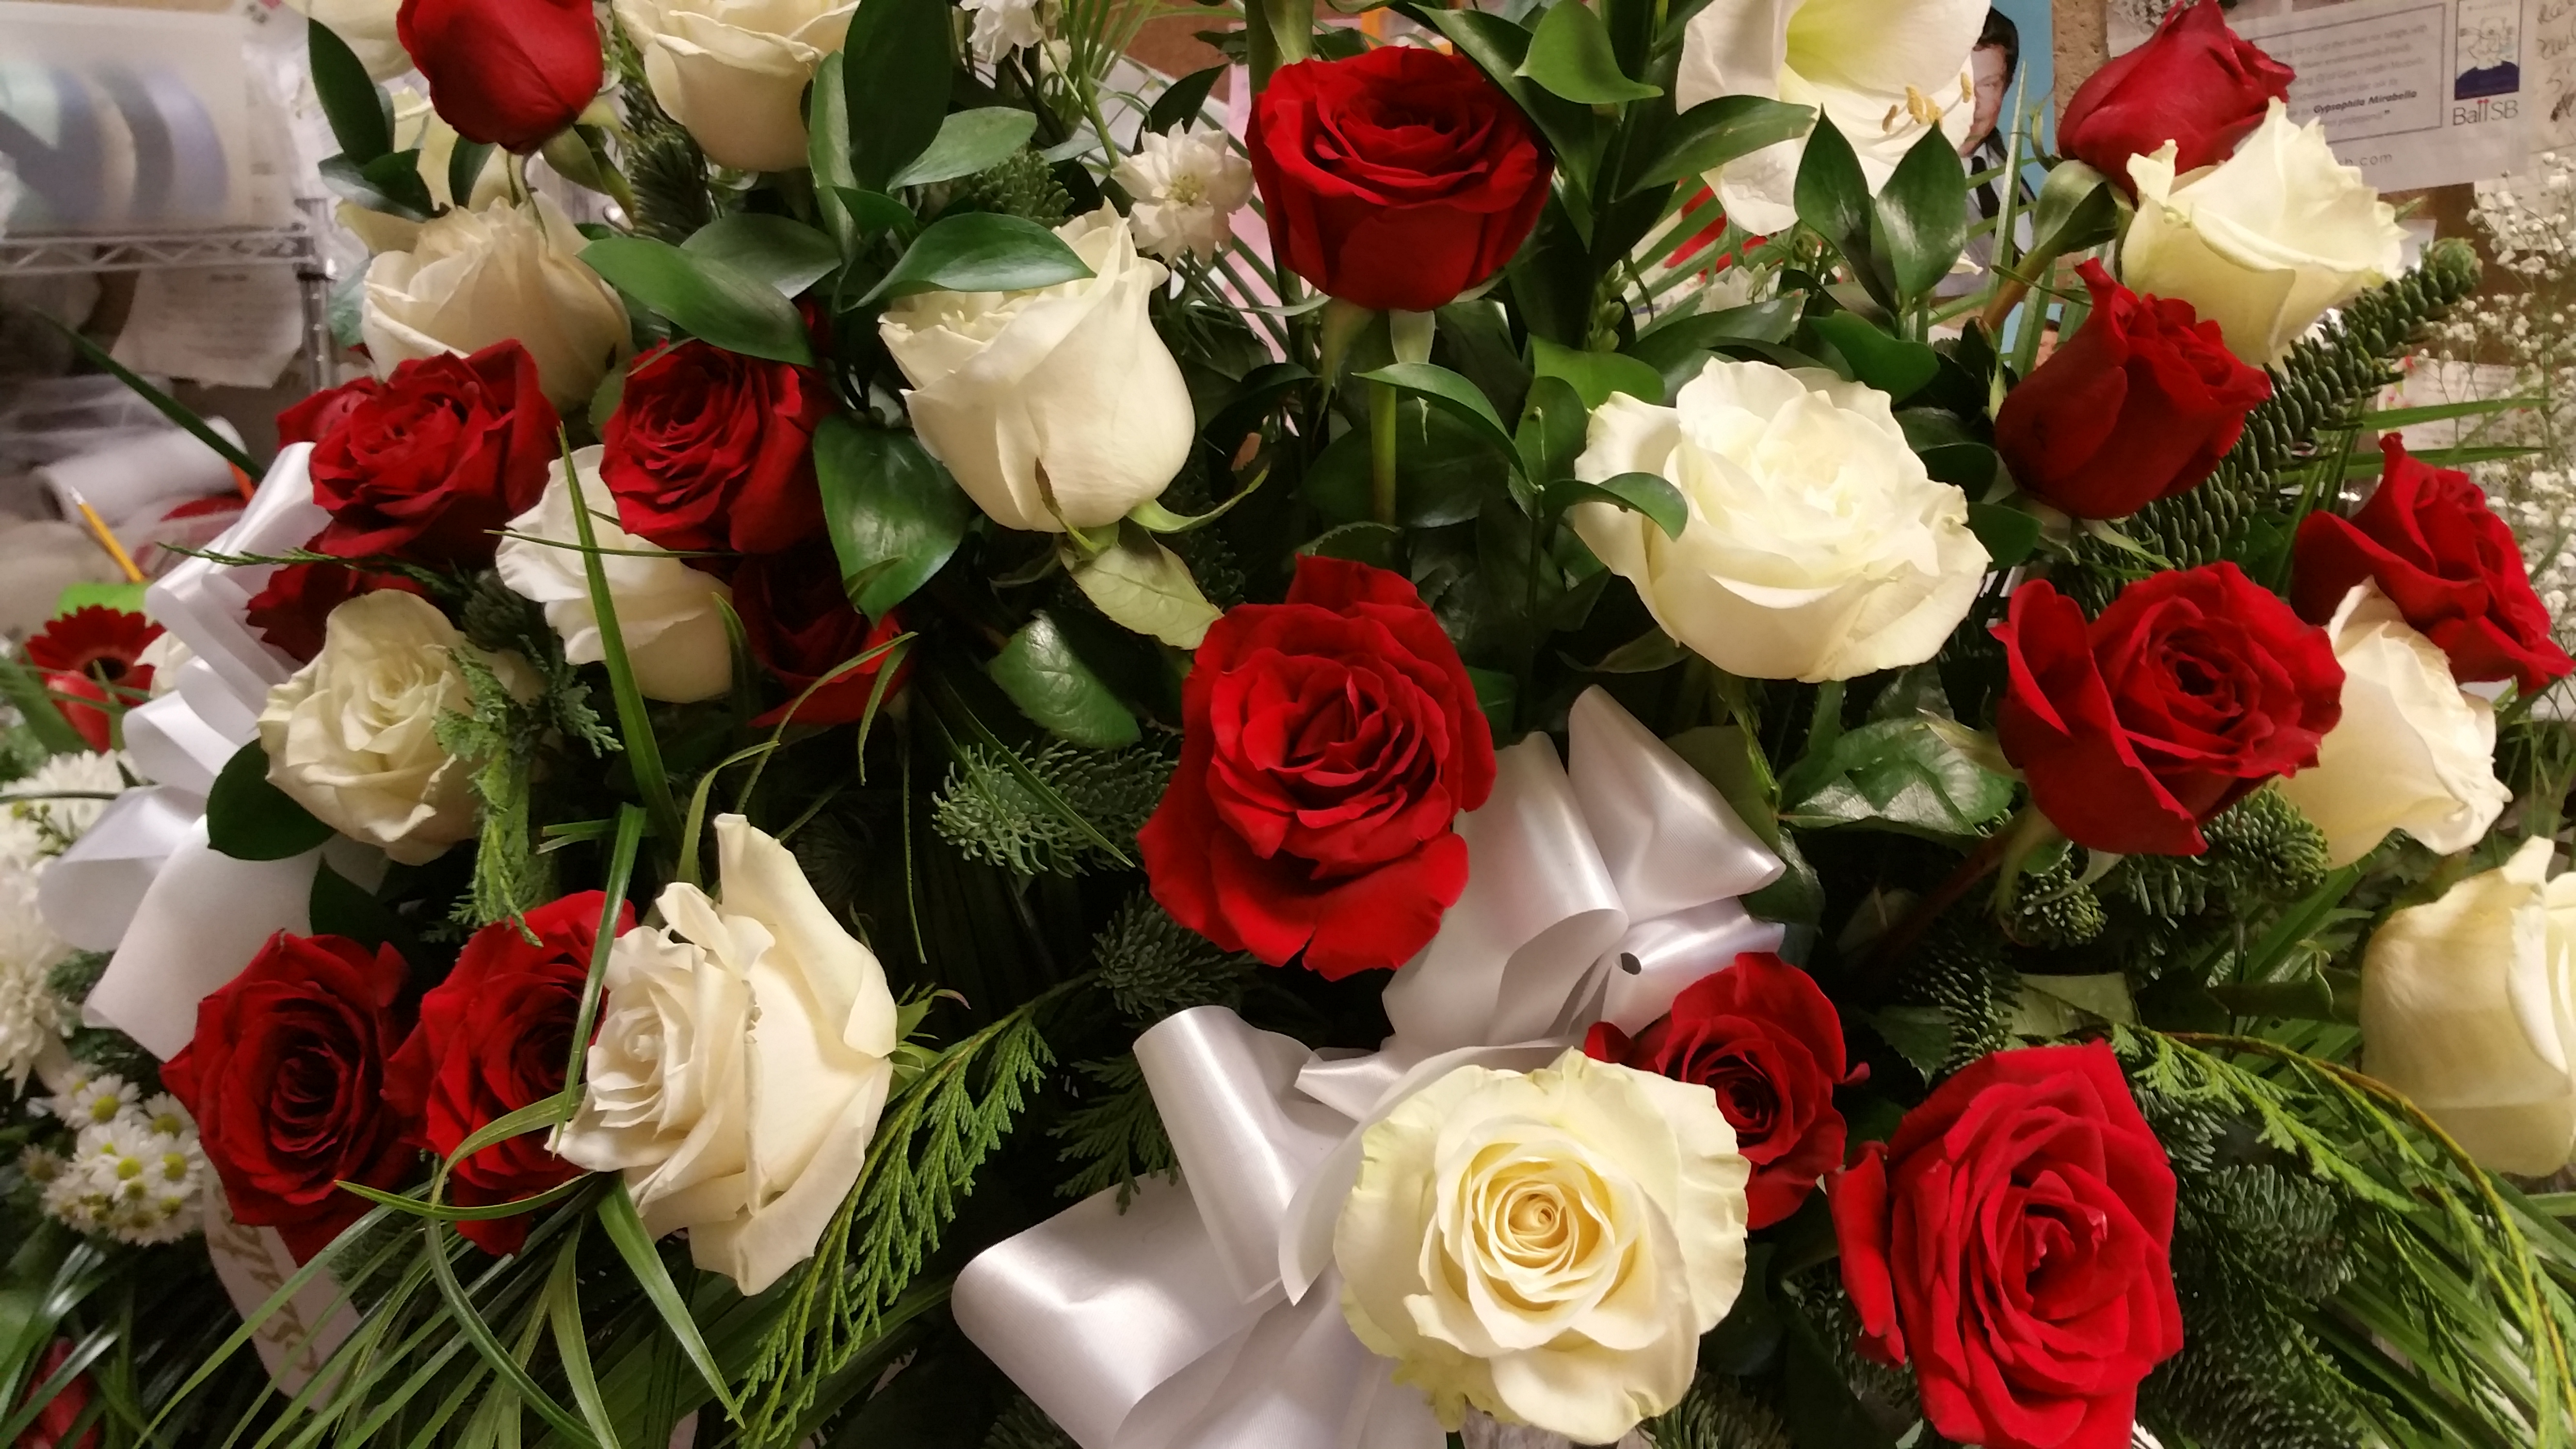 2) Red & White Basket Roses $250.00